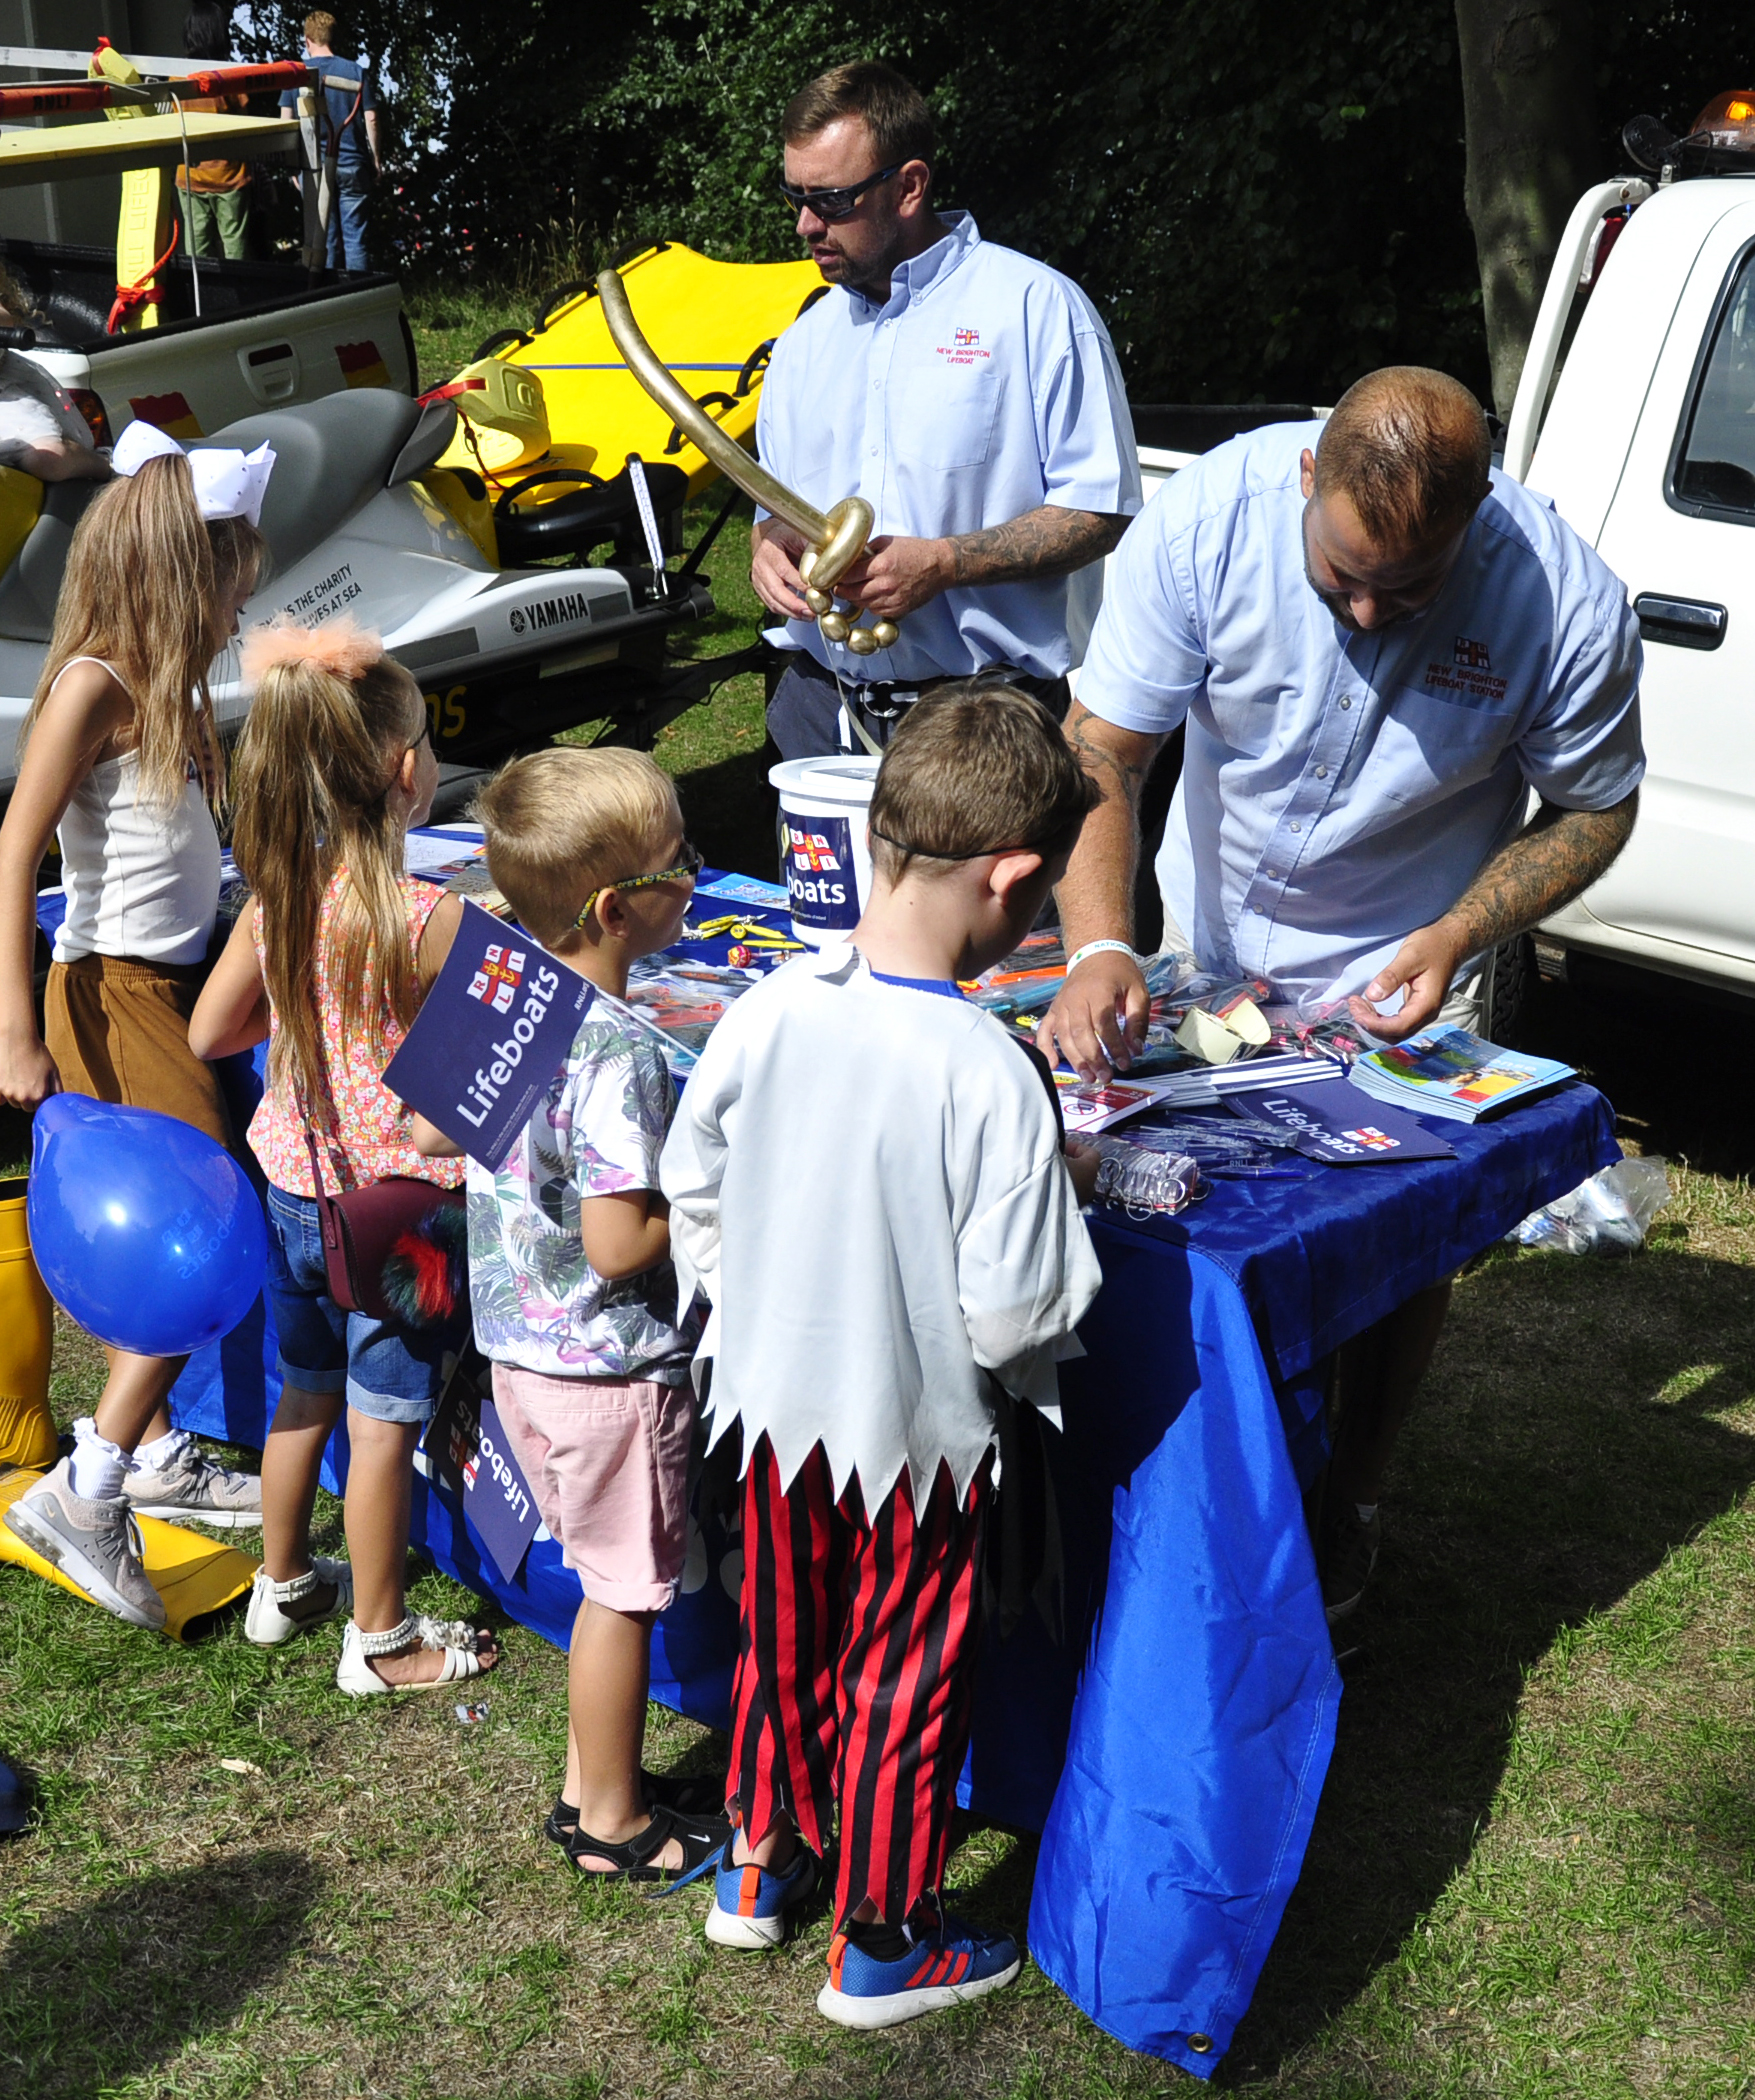 Four small children stand with their backs to camera at a table covered with RNLI memorabilia and literature